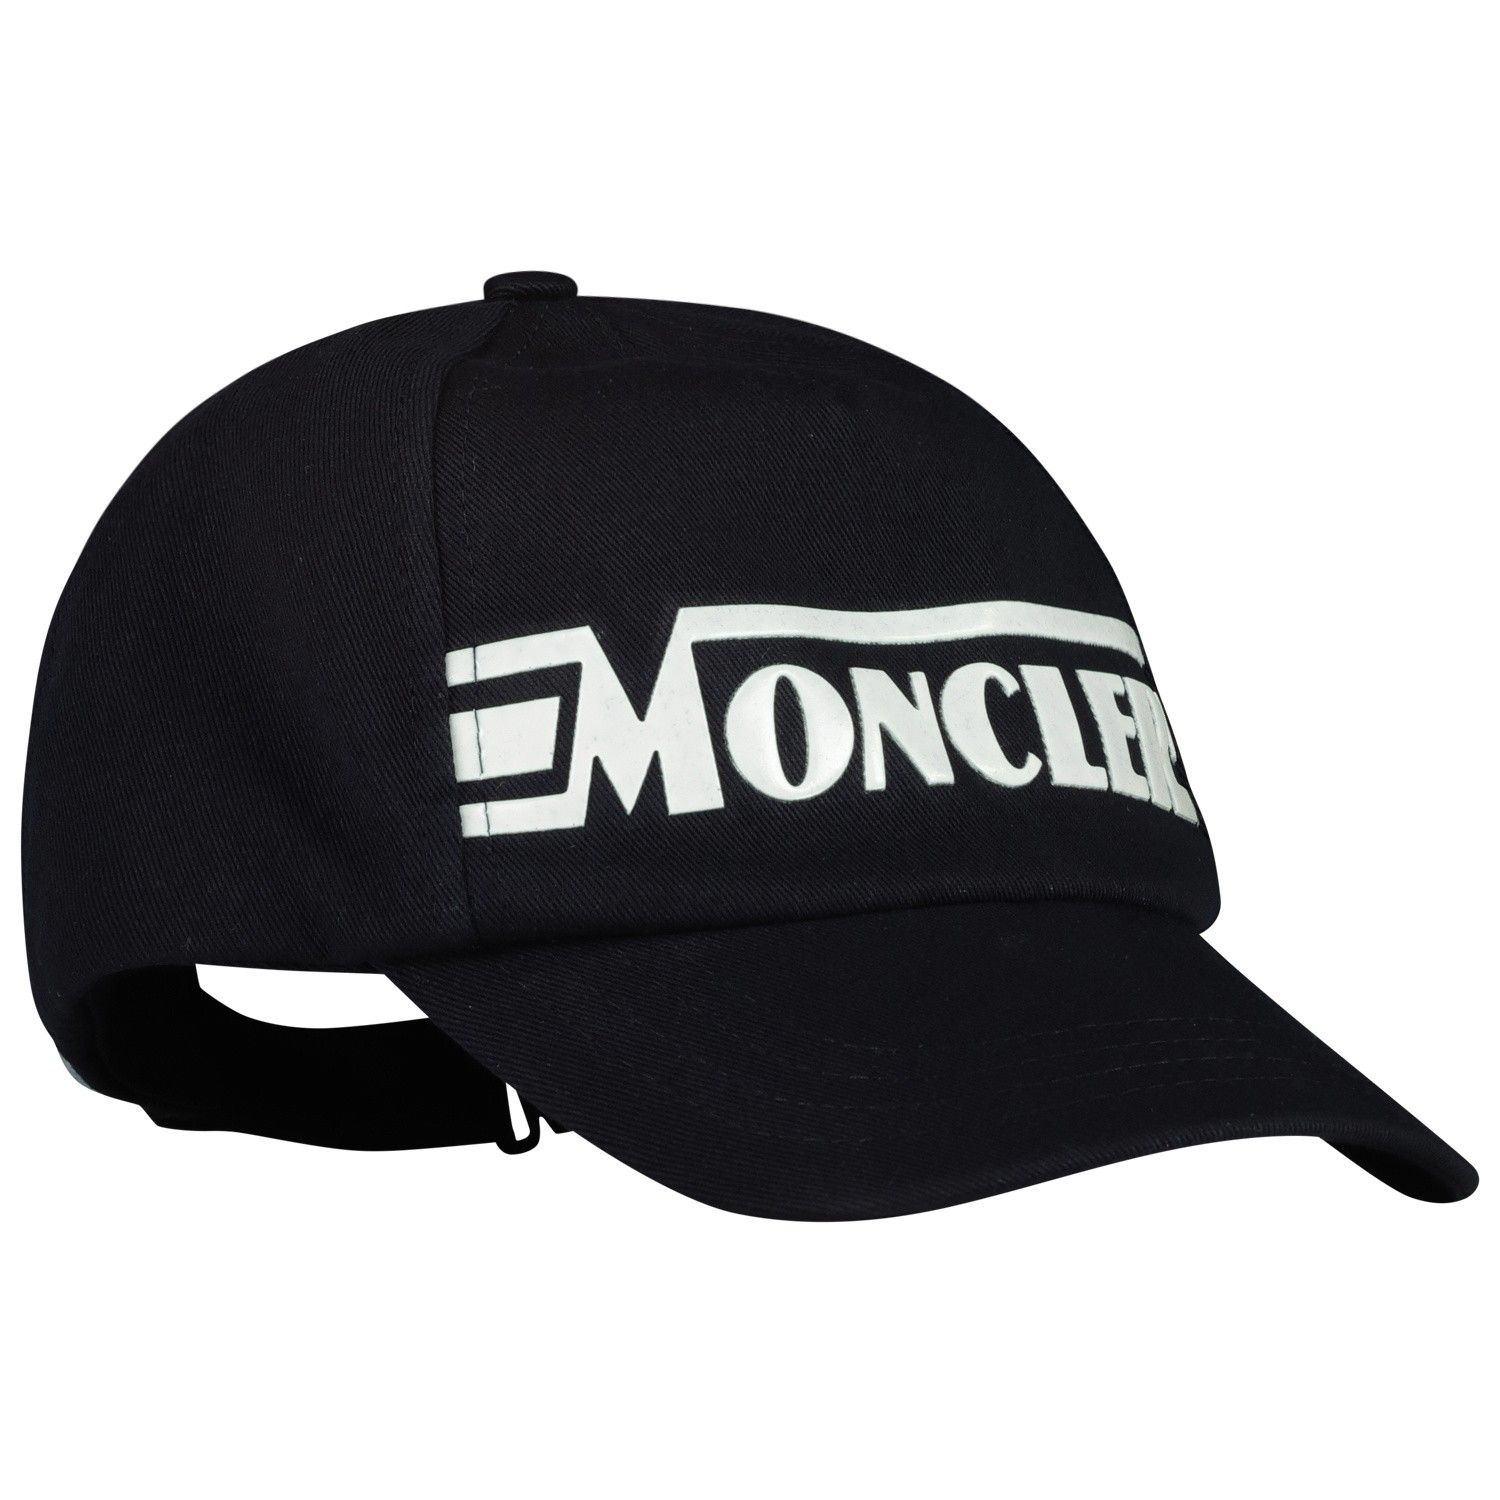 Picture of Moncler 3B70720 kids cap navy